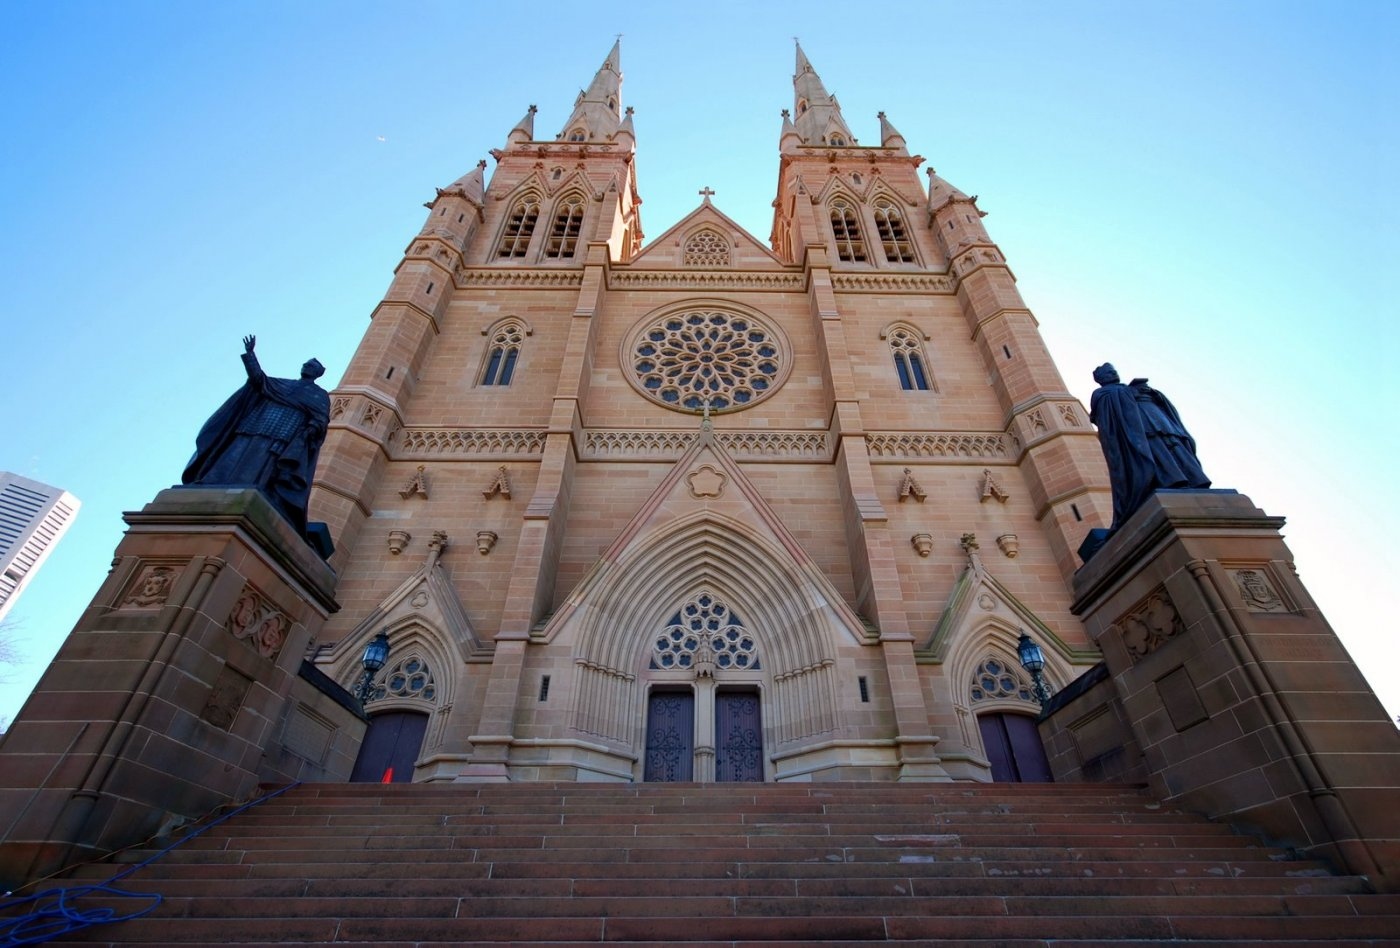 the catholic church in australia An amateur translation: a church to the glory of god - built under the title of st patrick - this auspicious stone was blessed and laid by - the rev'd j duhig dd archbishop of brisbane - on the 10th day of november 1918 - rdo p fouhy pastor.